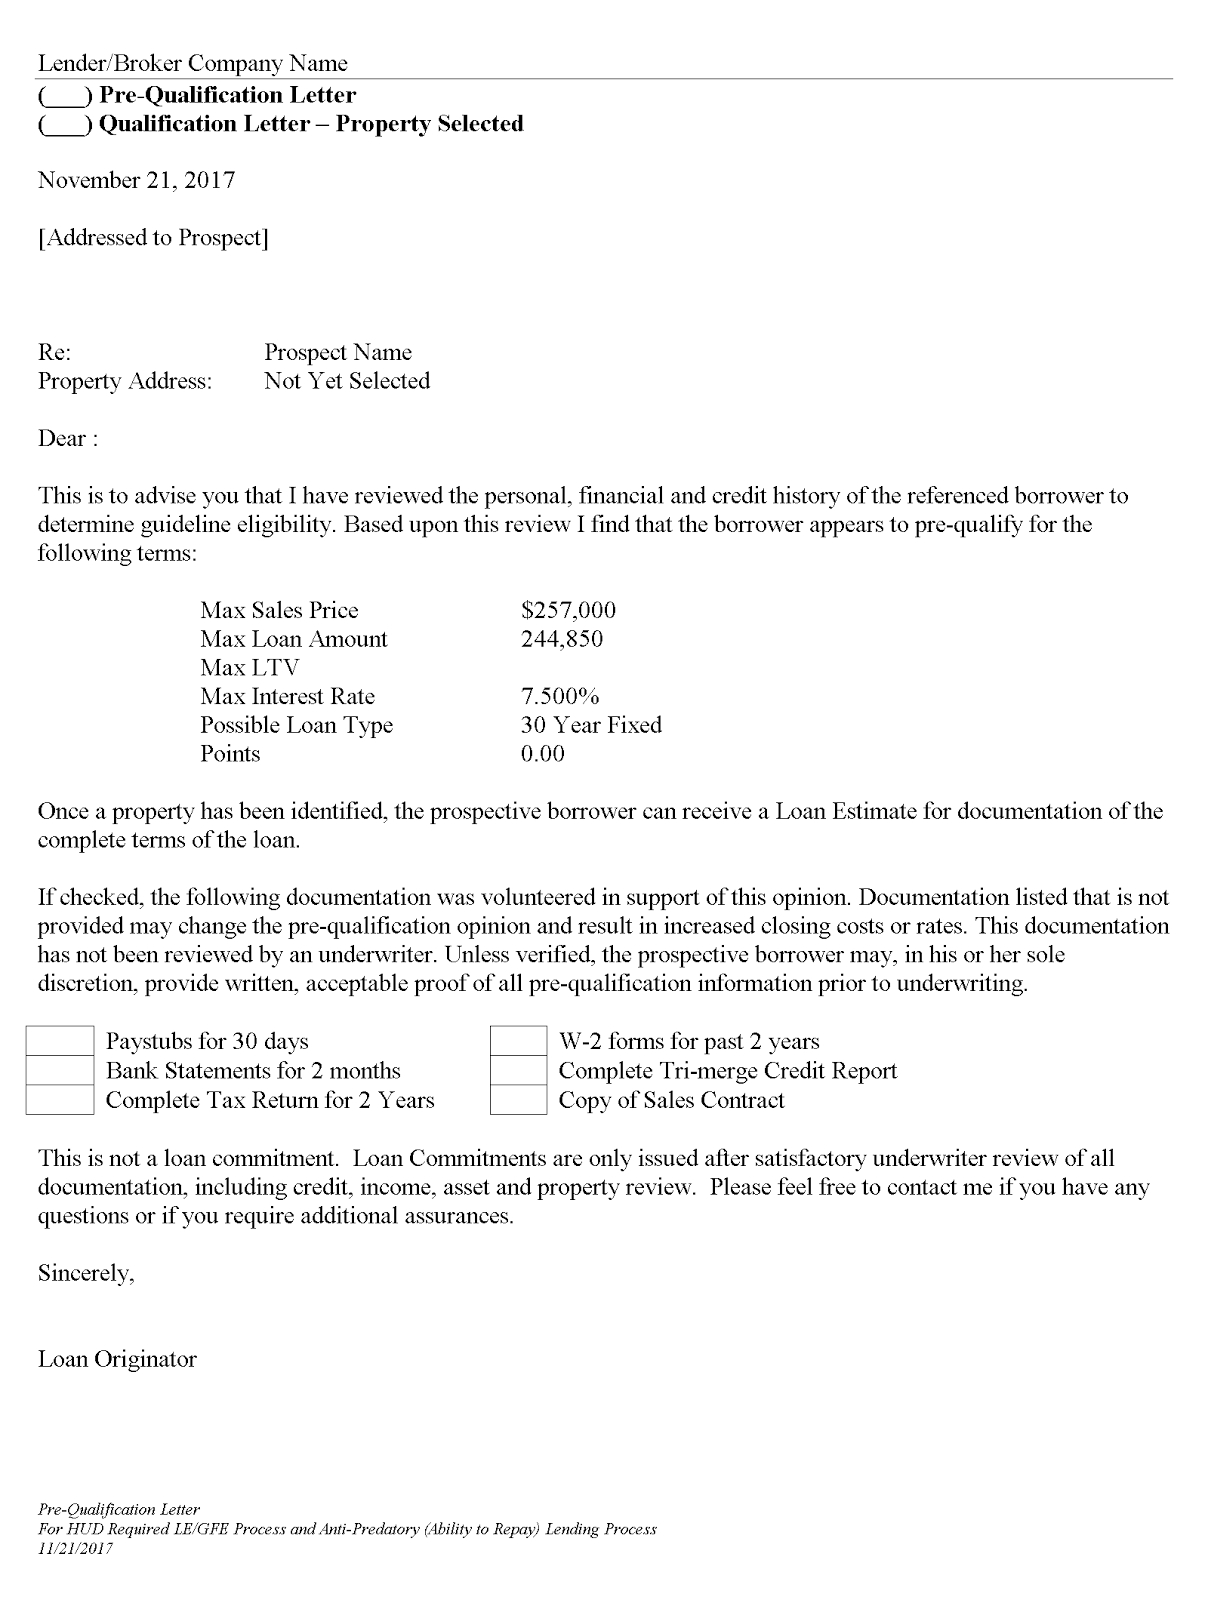 Mortgage pre qualification letter template collection for Broker opinion of value template